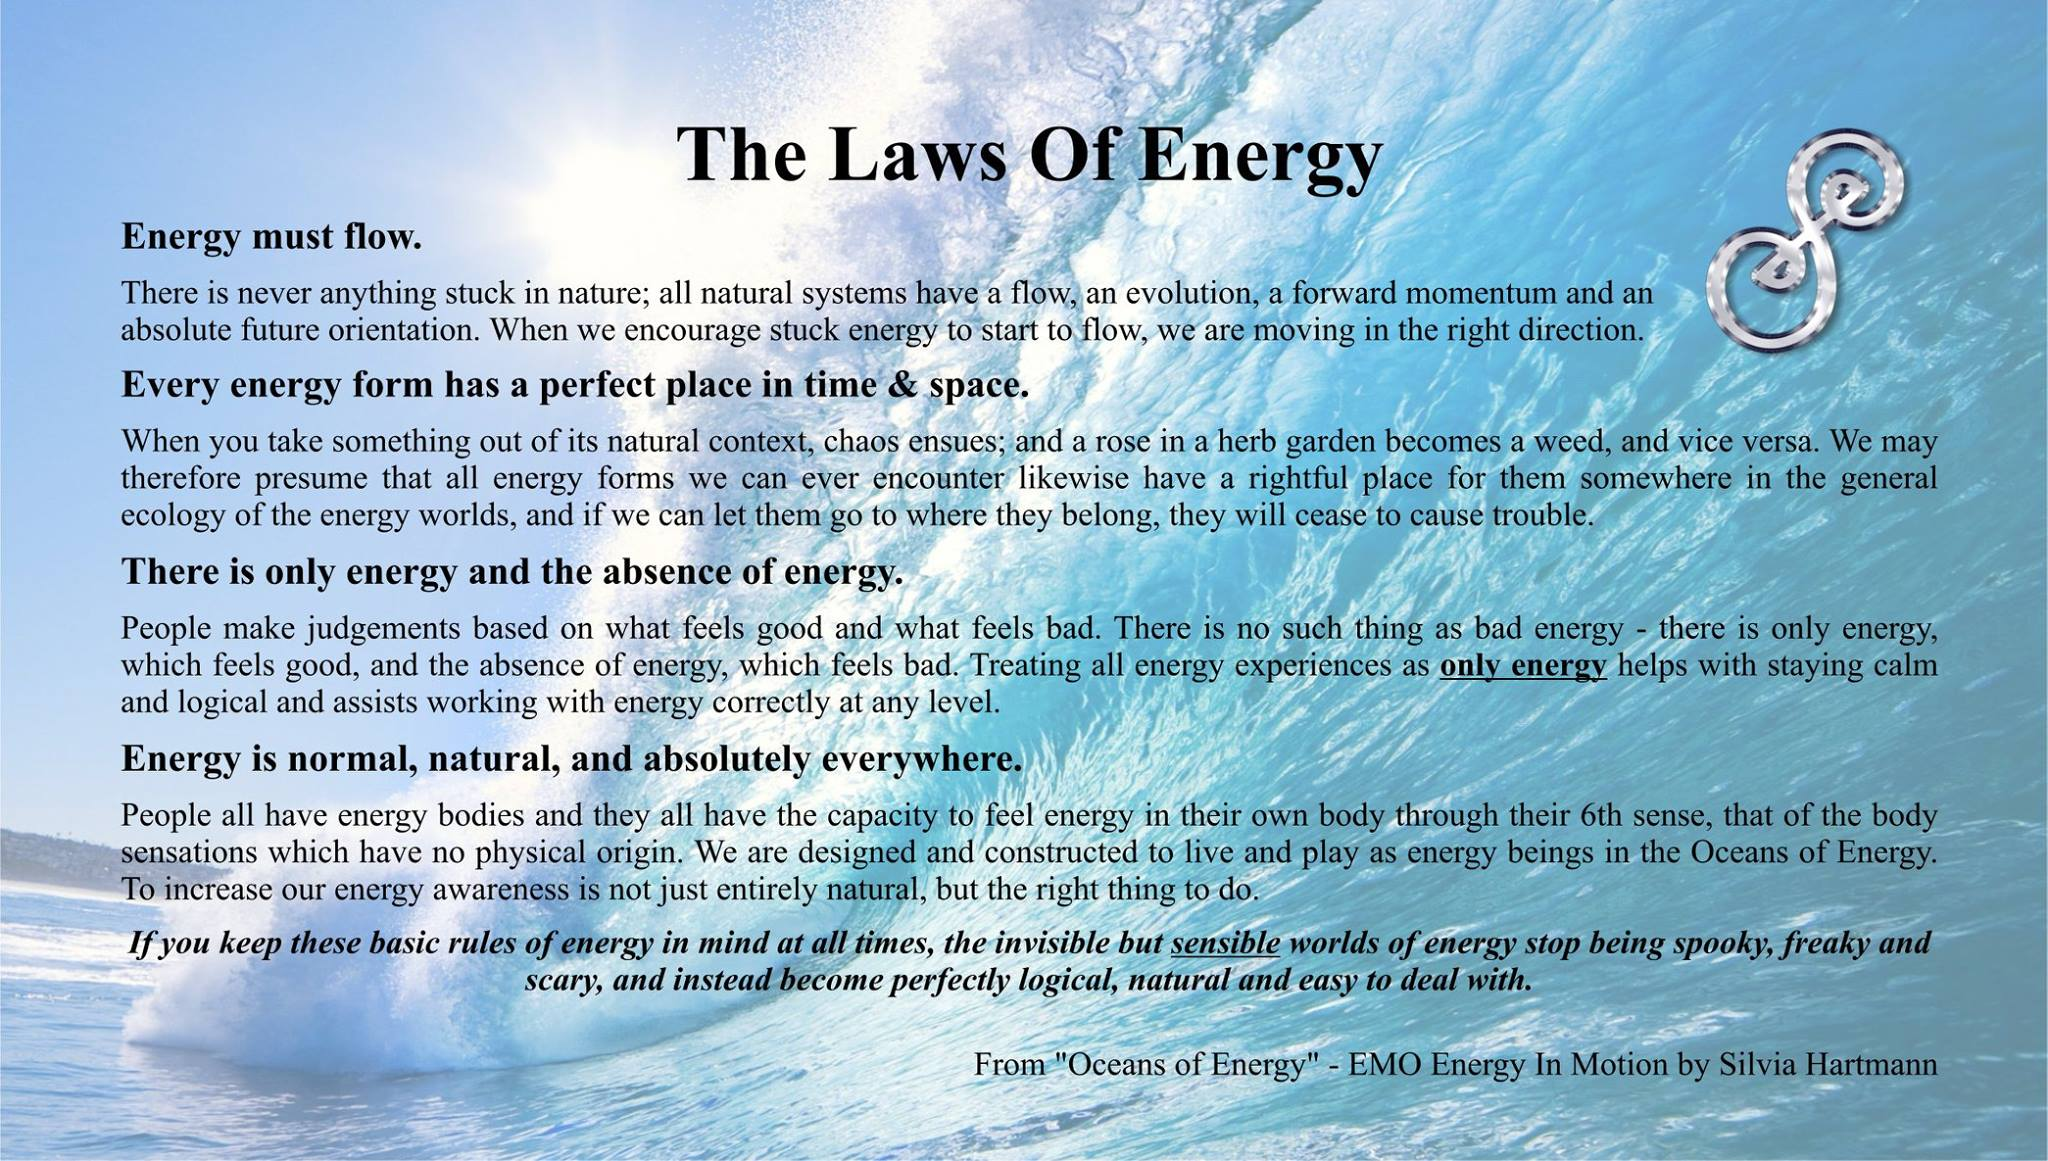 EMO: The Laws Of Energy